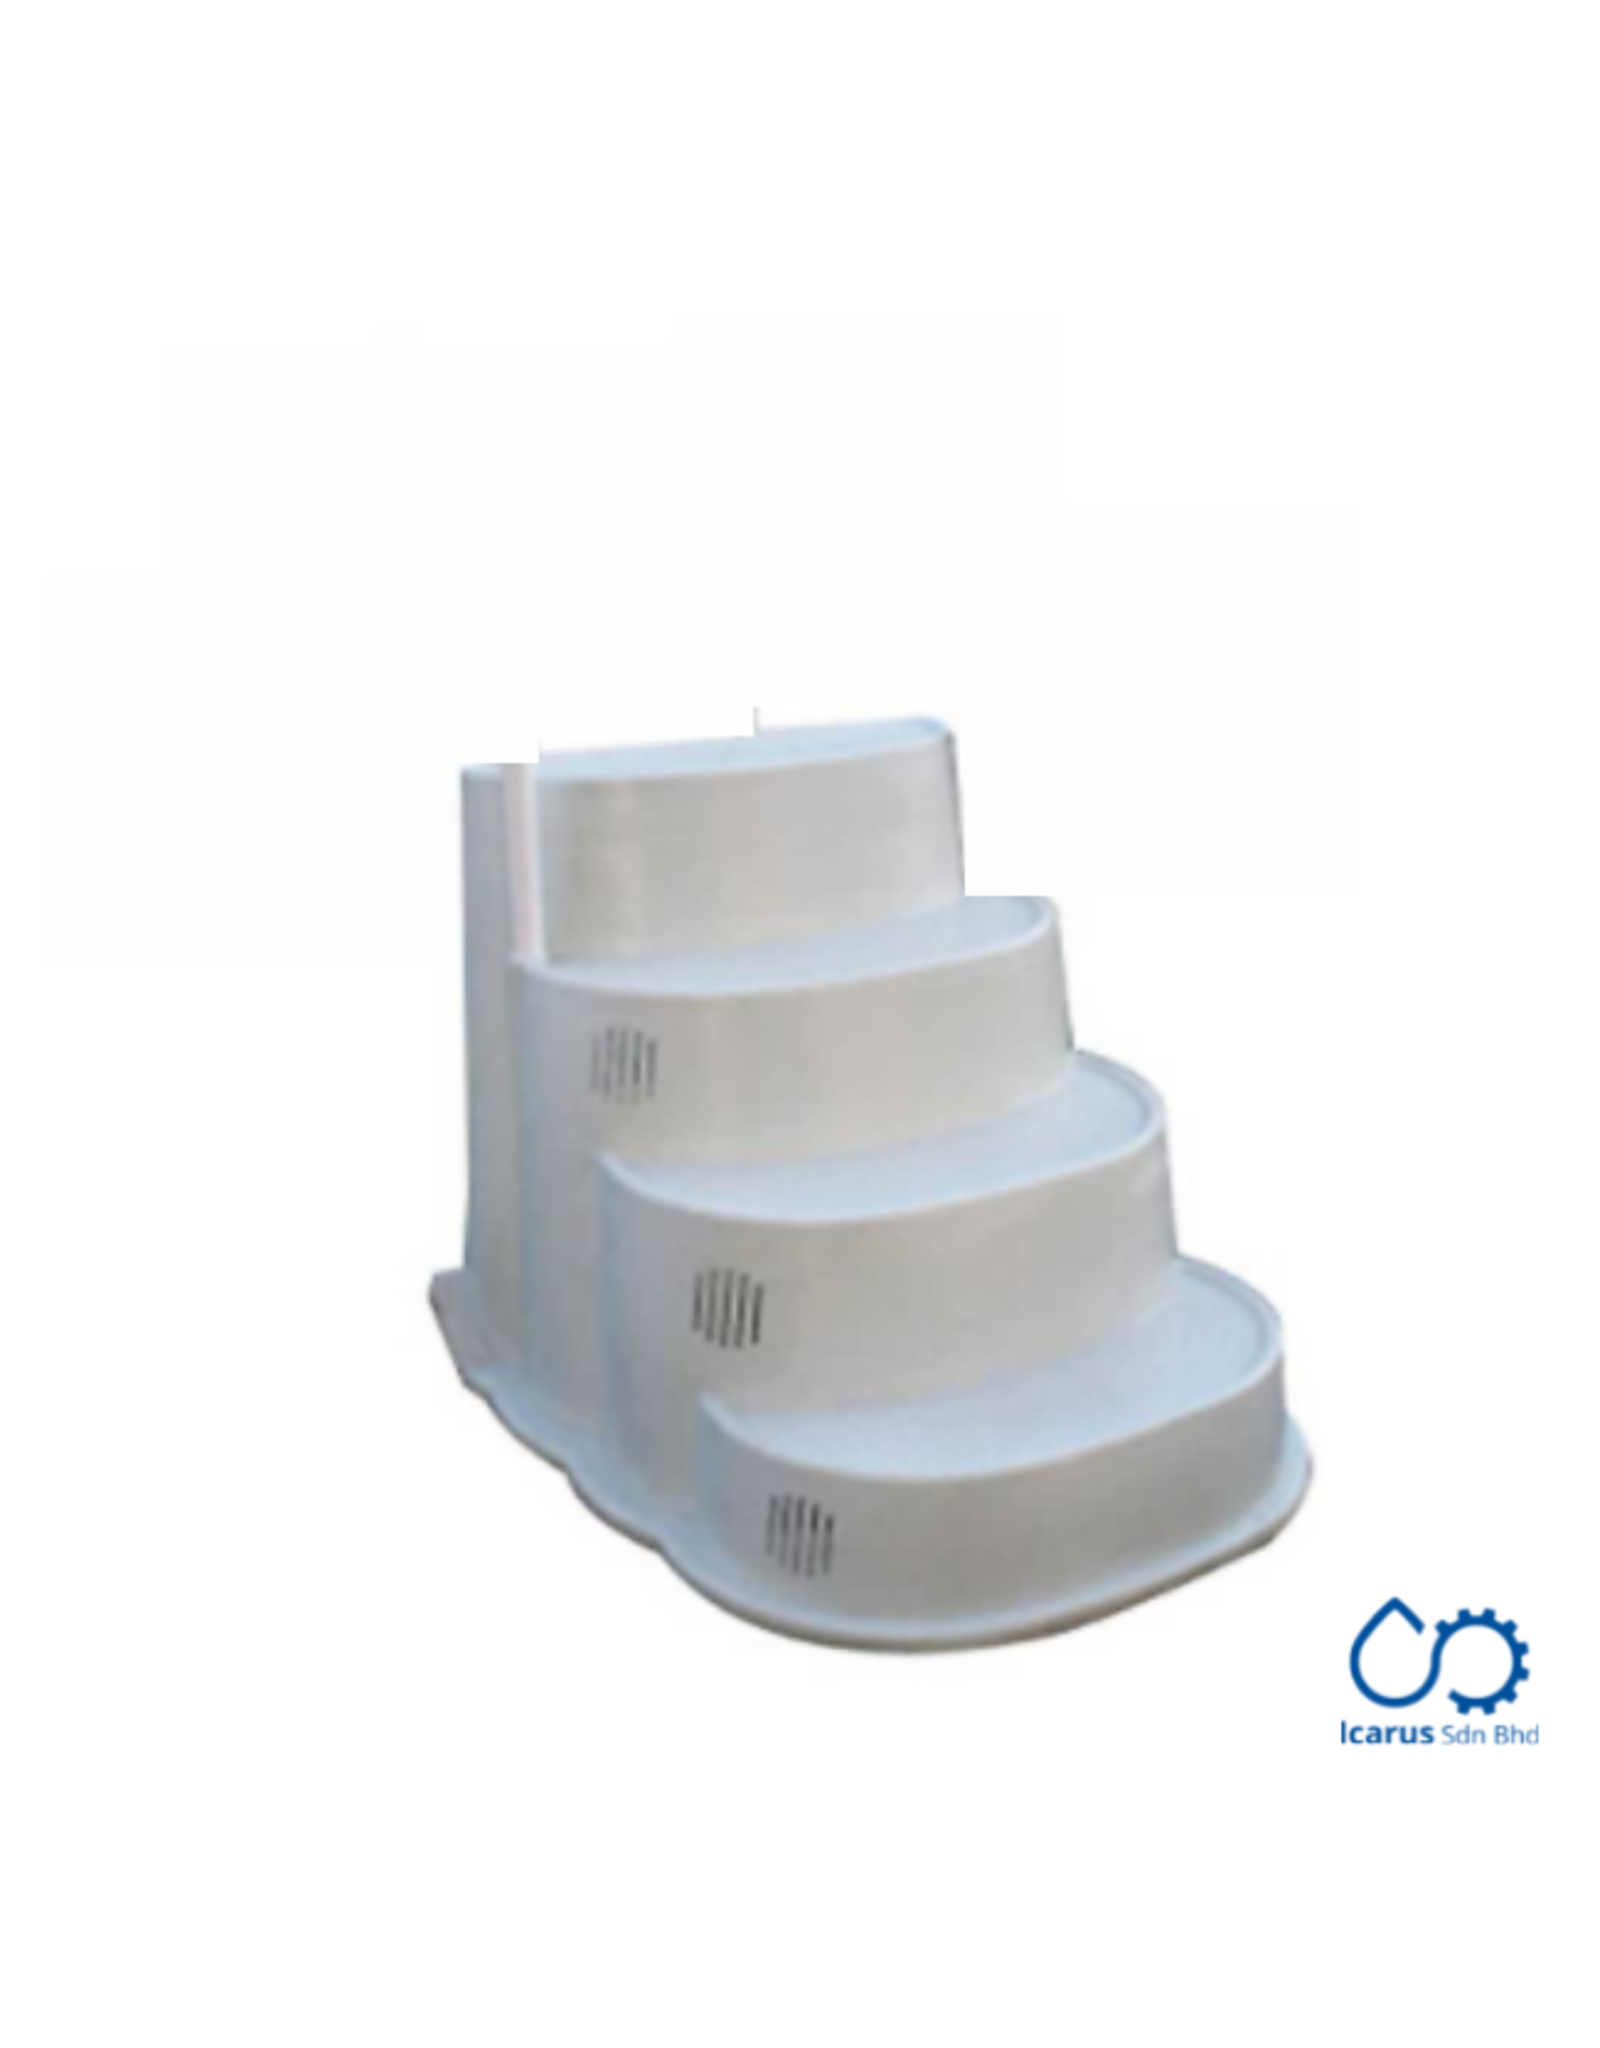 Classic Pools Stern's Slimline Cake Step, White, Dimensions approx. 1.1x0.90x1.2m (WxHxD); without Handrails